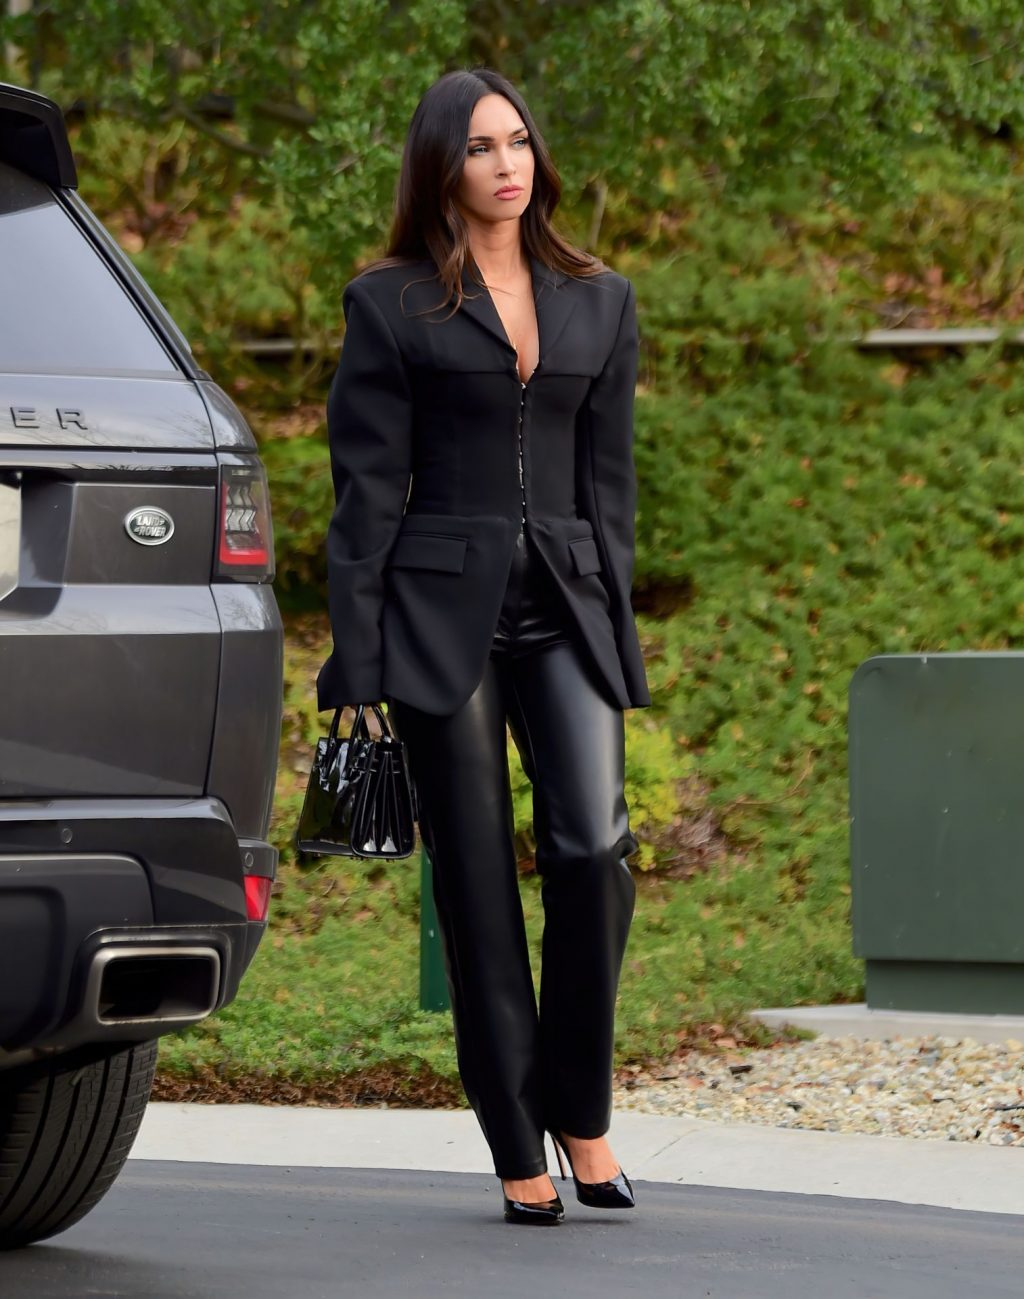 Megan Fox Stuns in a Black Blazer and Leather Pants on Her Way to a Meeting (12 Photos)